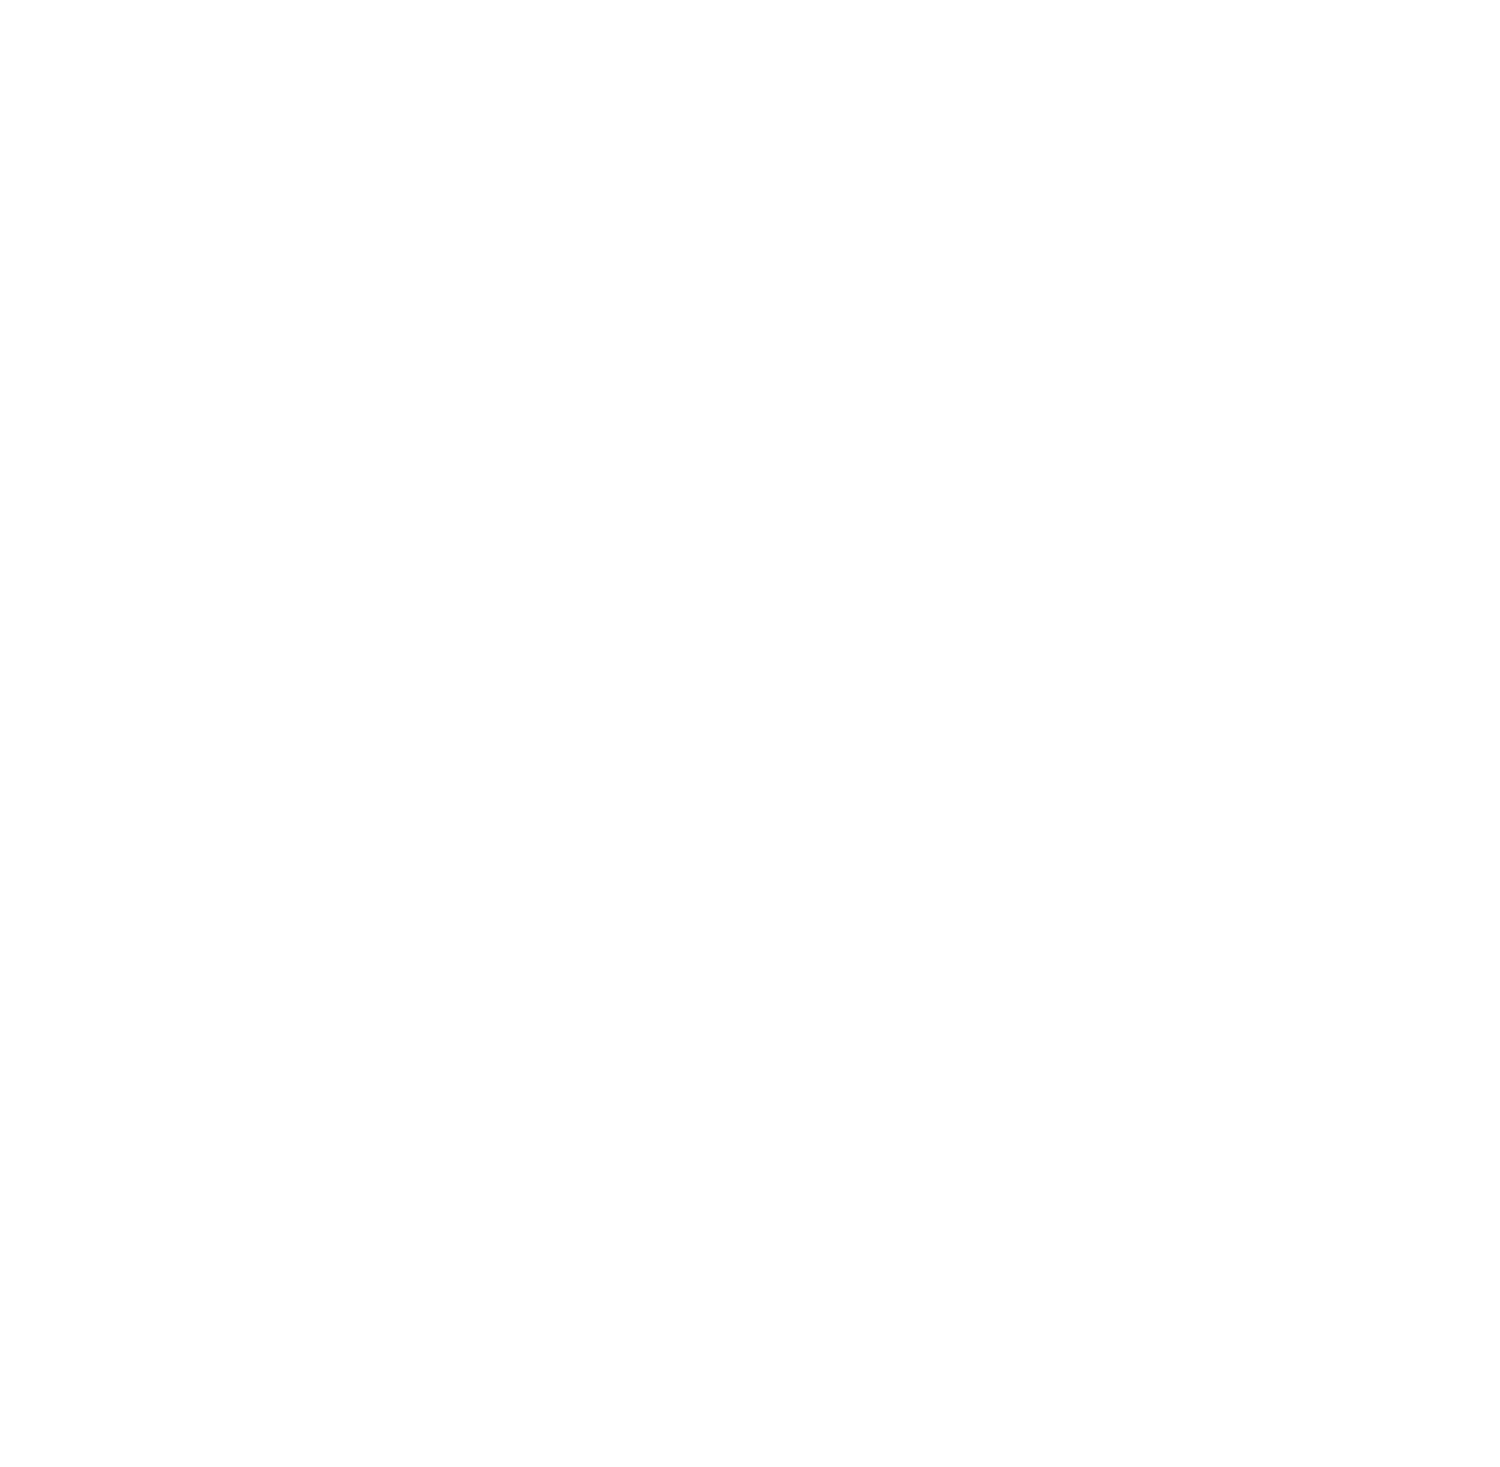 At The Helm Hotel & Pub